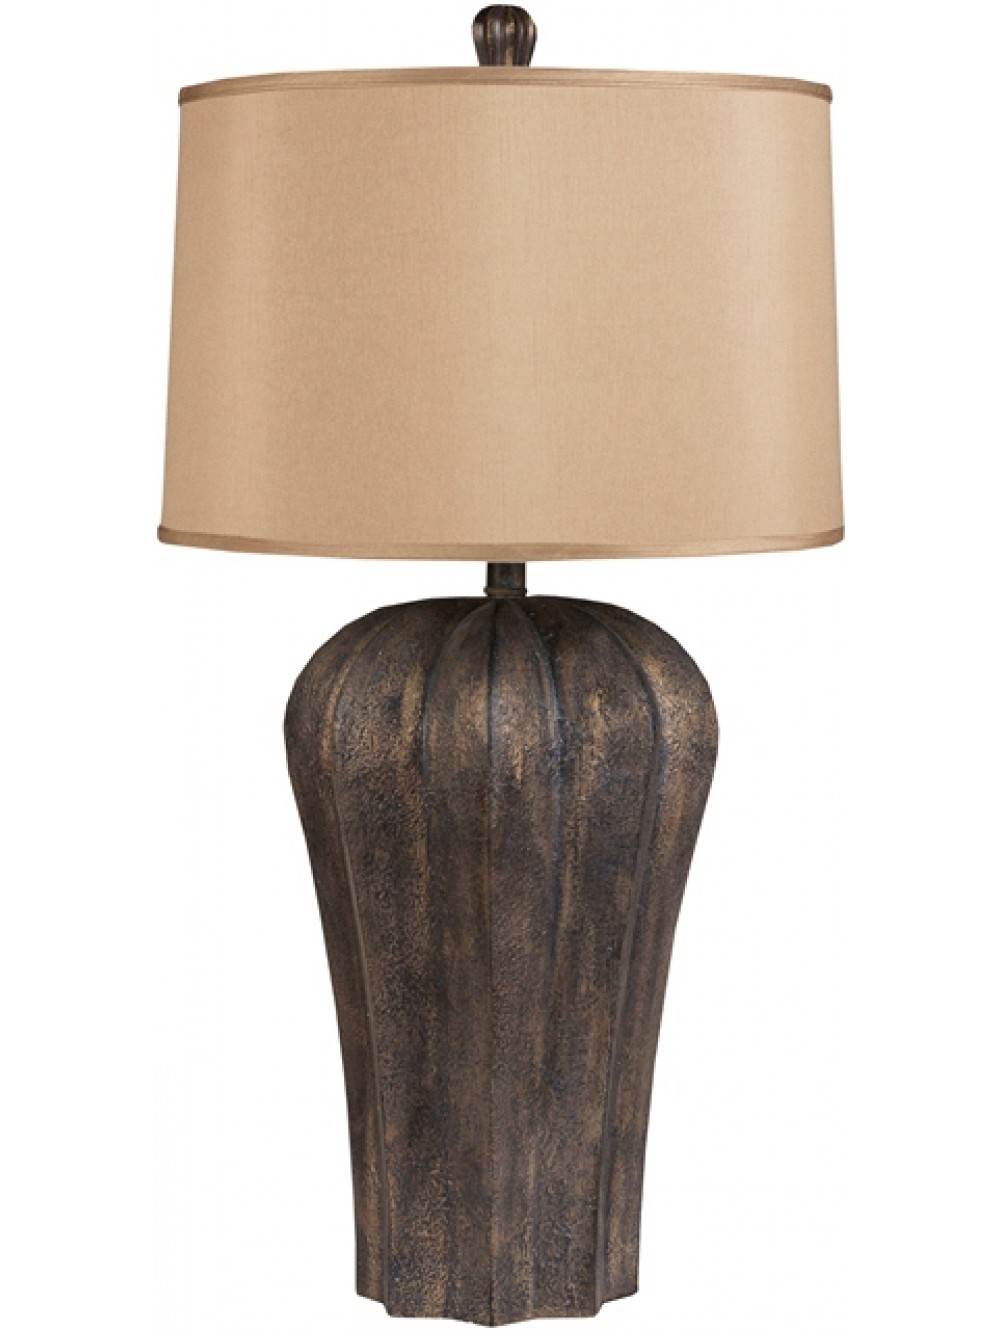 awesome bronze  way table lamps made of bronze and light brown shade forbeautiful interior.  way table lamps that fascinate your home with those gorgeous